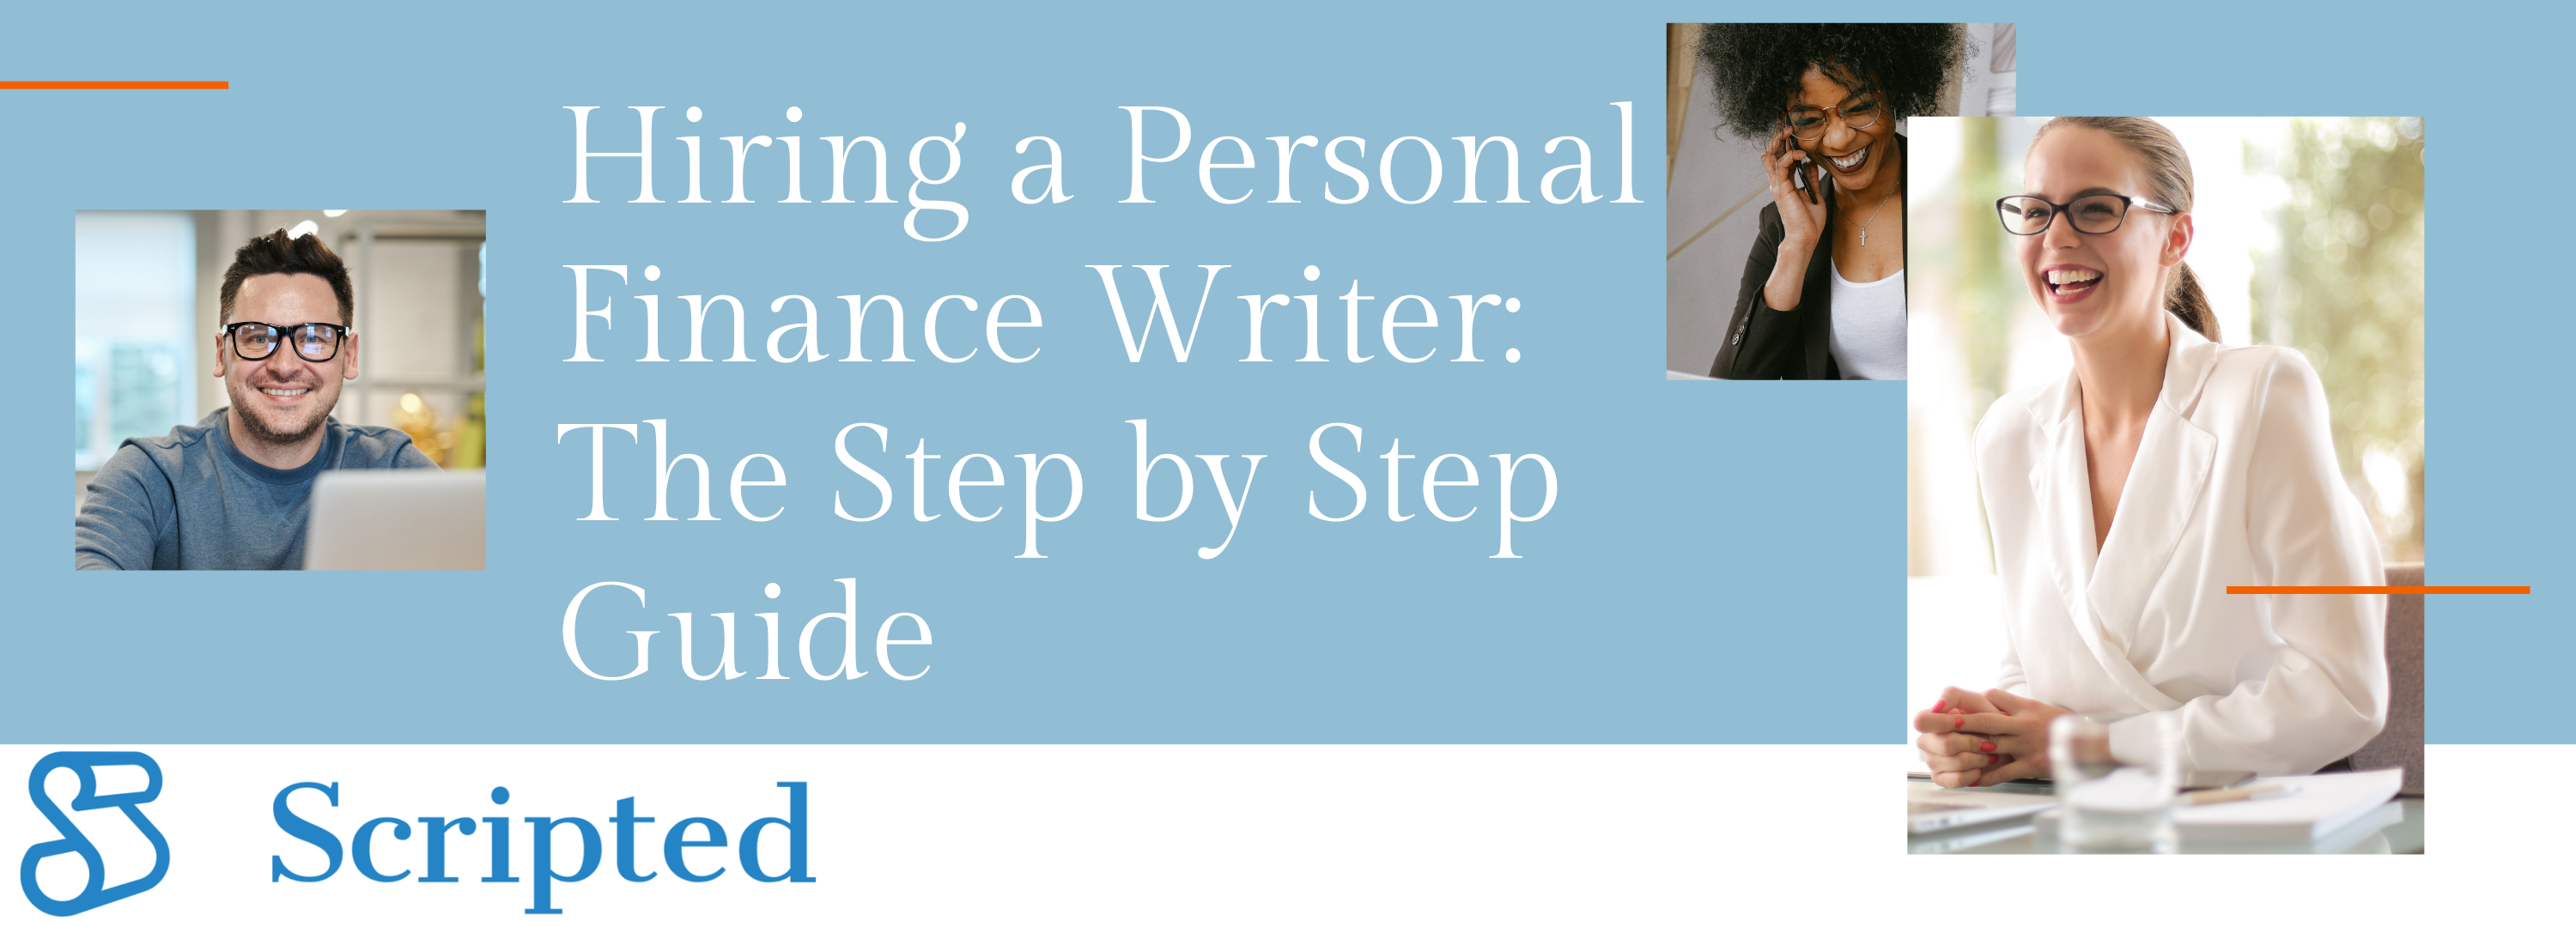 Hiring a Personal Finance Writer: The Step-By-Step Guide